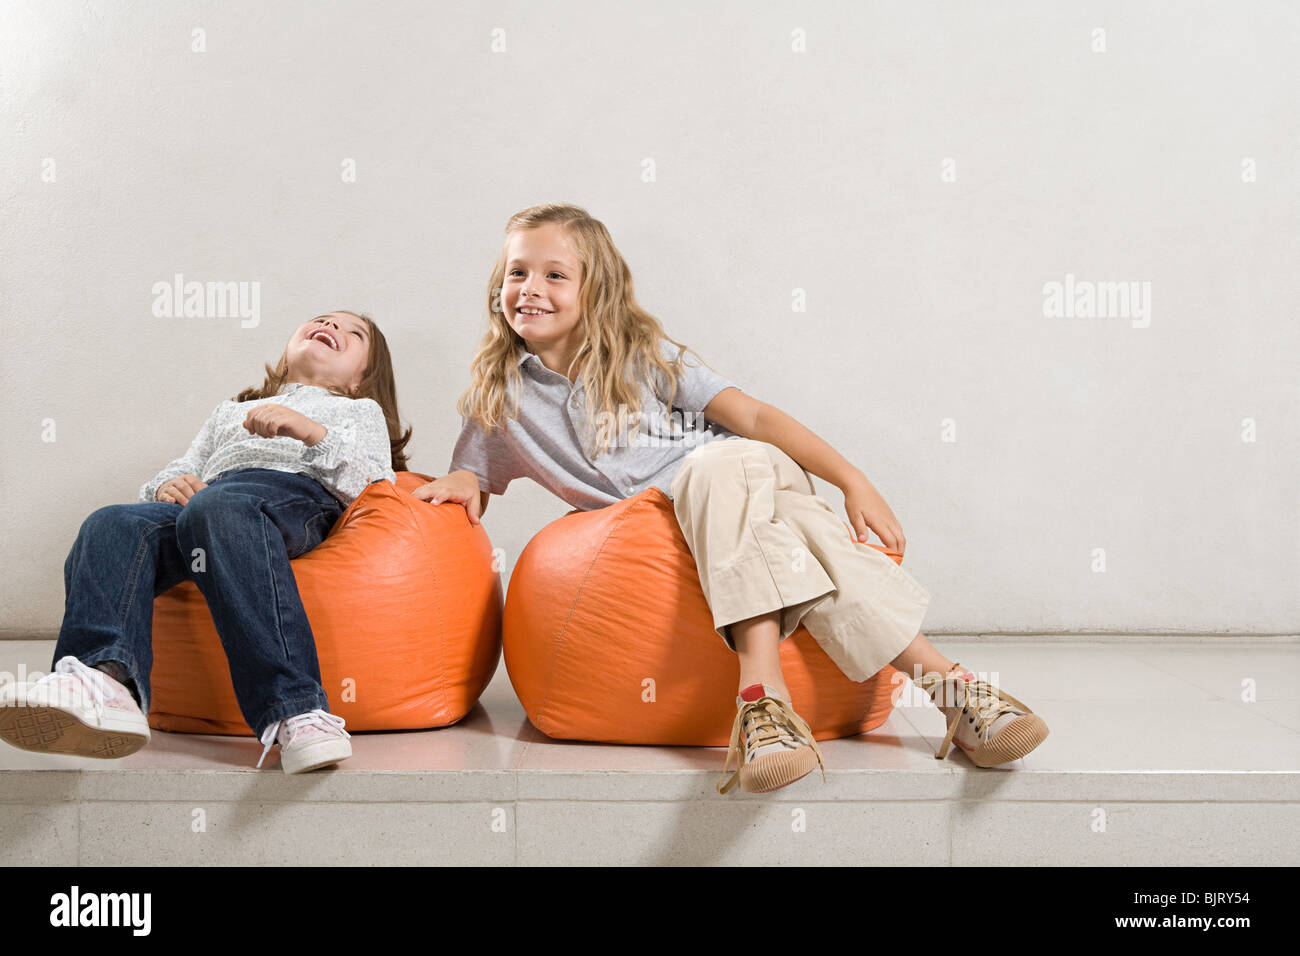 Sisters sat on bean bags - Stock Image